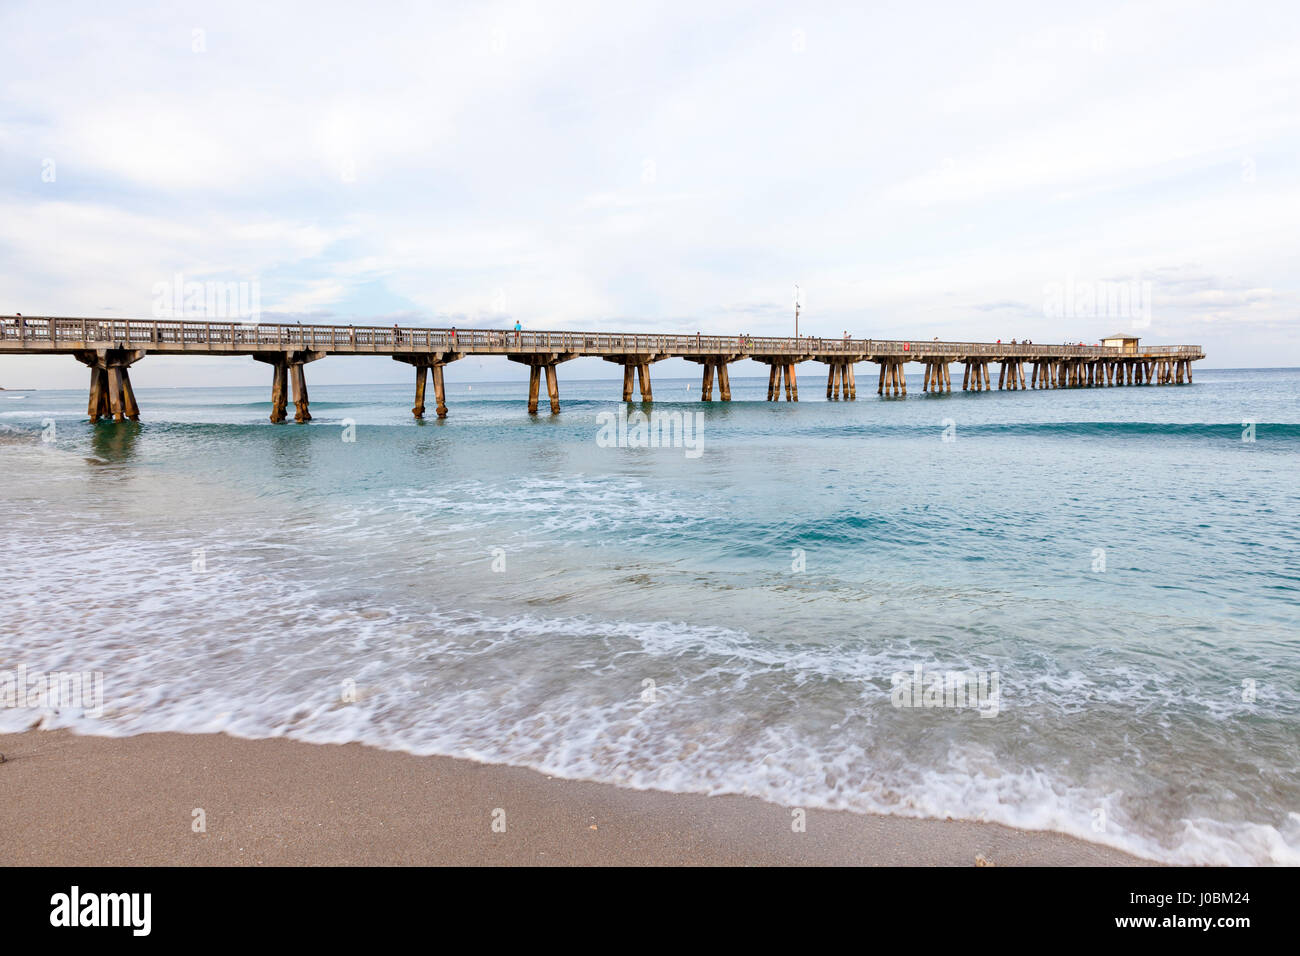 Pompano Beach fishing pier on the Atlantic Ocean coast in Florida, United States - Stock Image